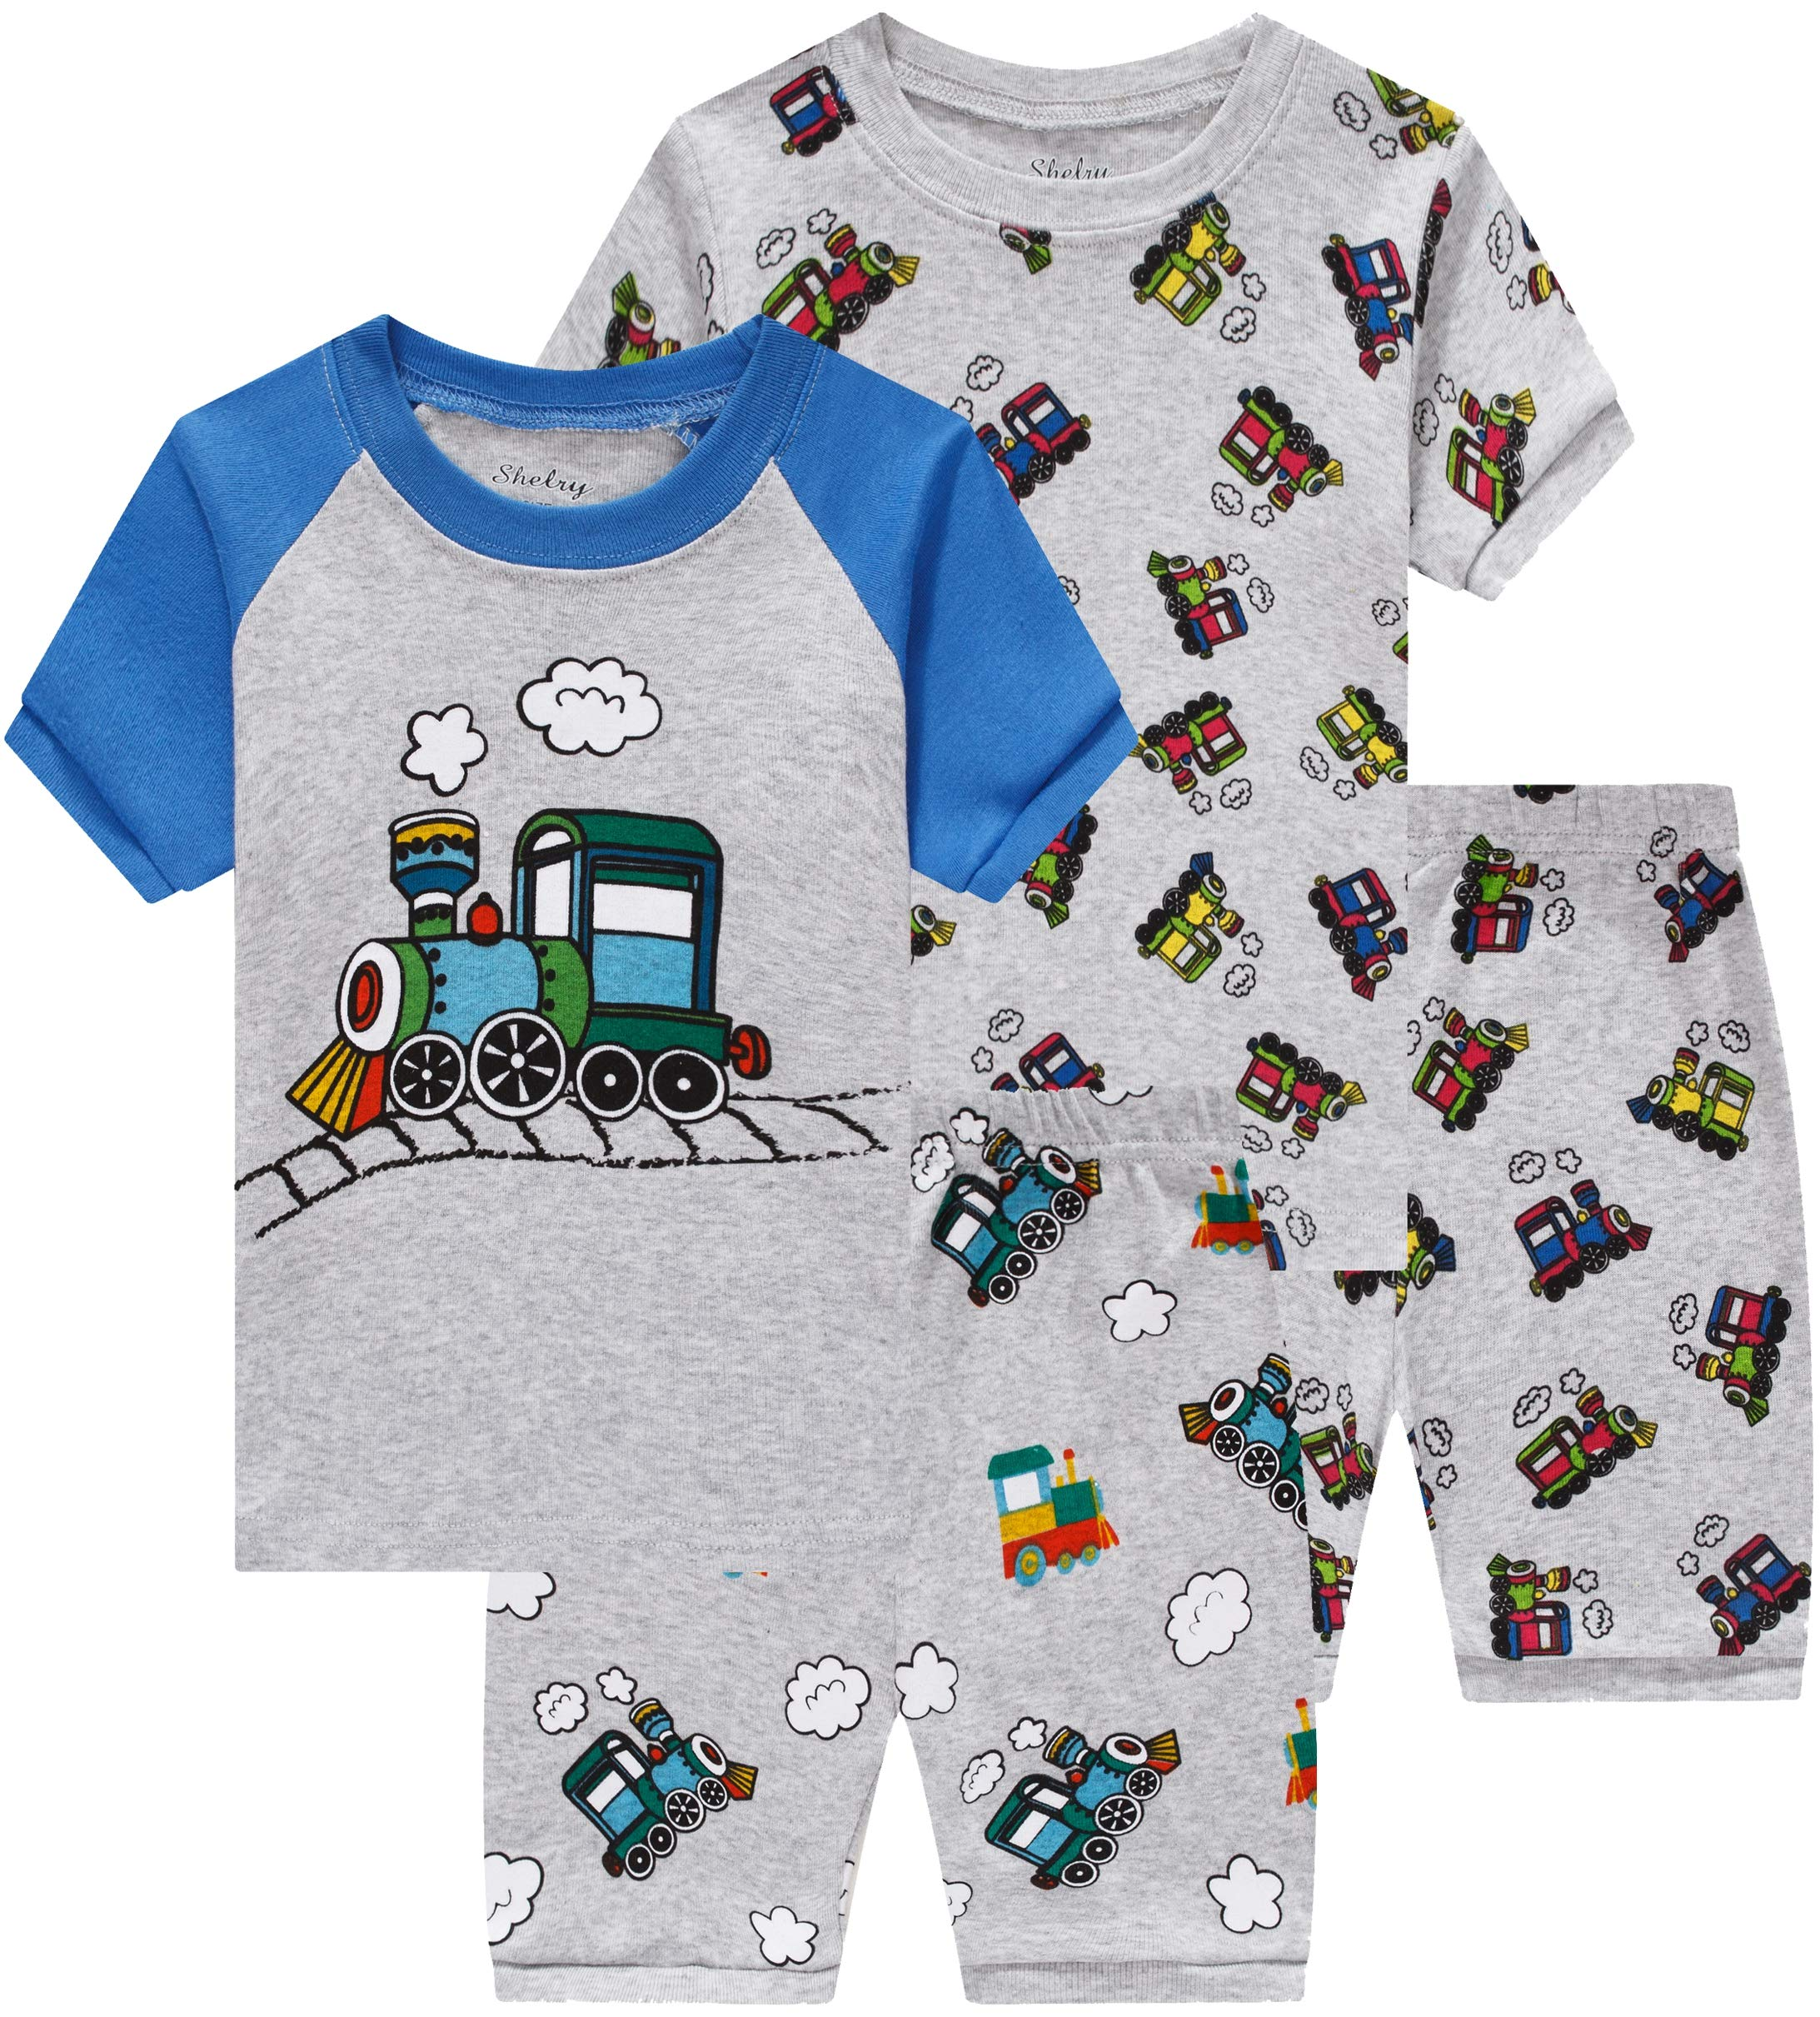 shelry Children Pajamas for Boys Baby Train Clothes Summer Toddler 4 Pieces Short Pj Set 6t